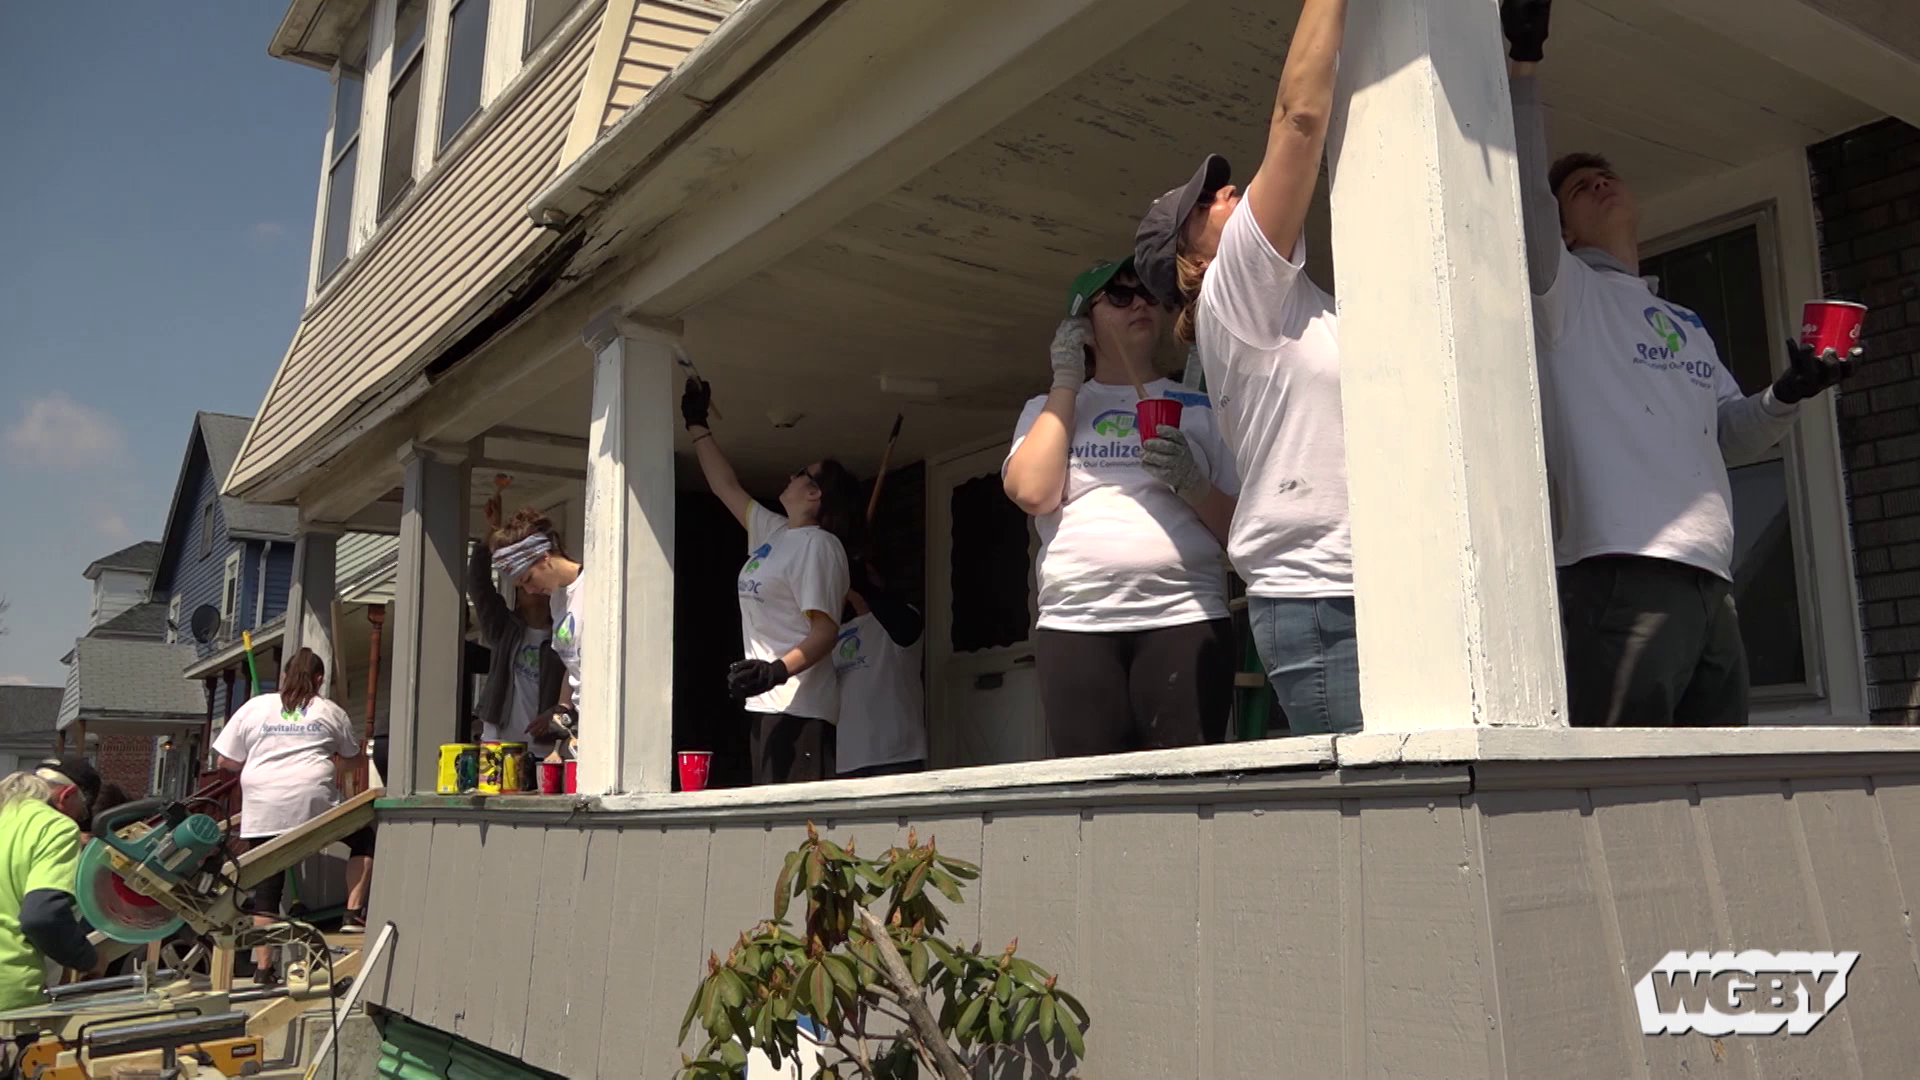 Tag along on Revitalize CDC's latest #GreenNFit project, which focused on renovating Manhattan Street in Springfield's Old Hill neighborhood. Volunteers worked on more than a dozen properties painting, landscaping and beautifying the homes of several residents who don't have the means to do the work themselves.